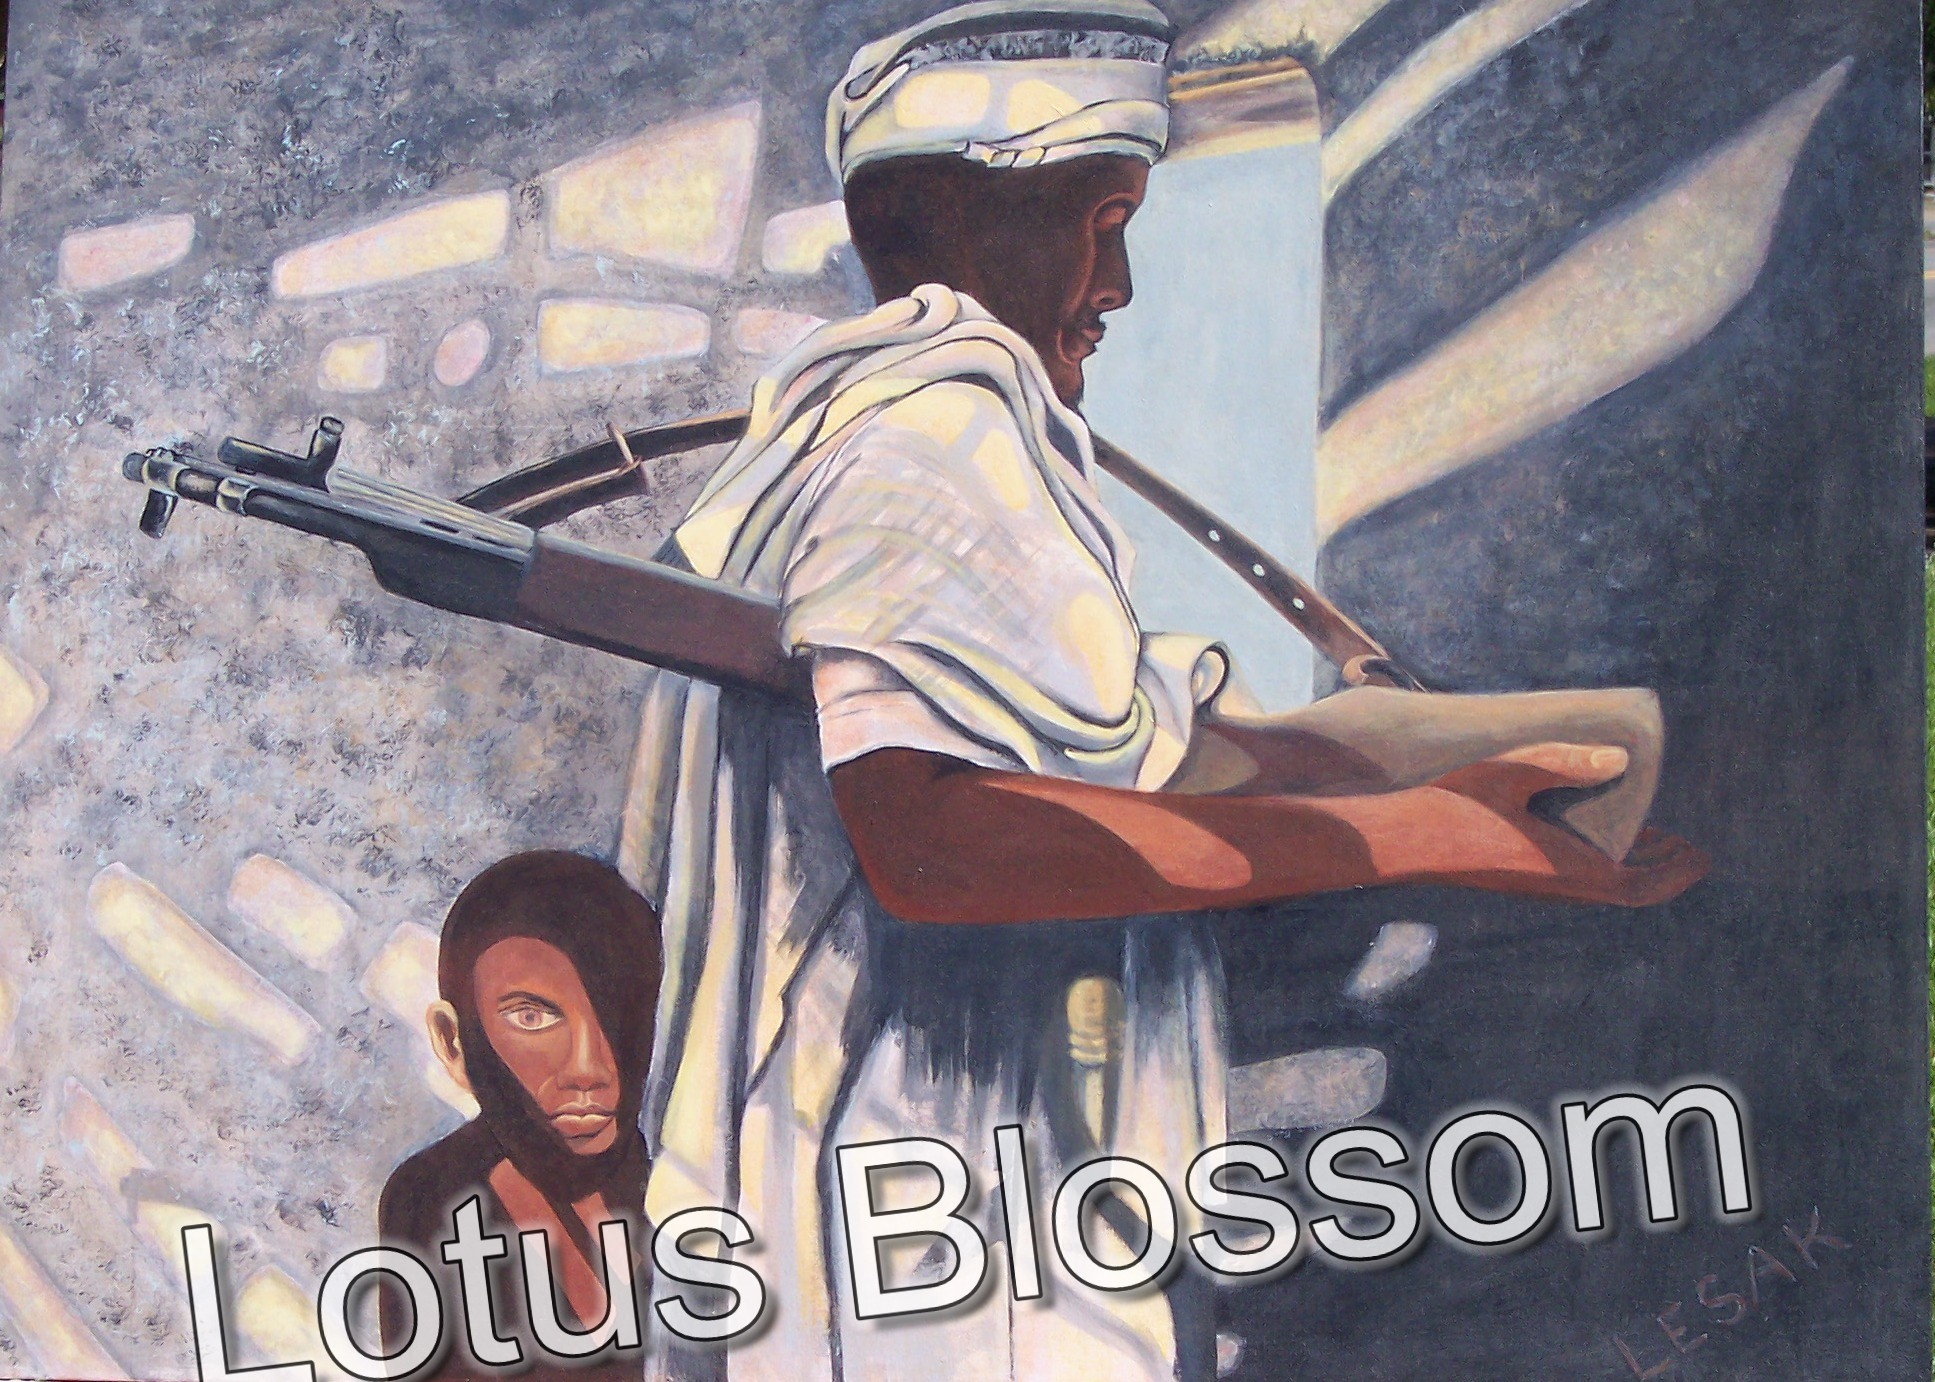 Paternal and Patriotic by Lotus Blossom